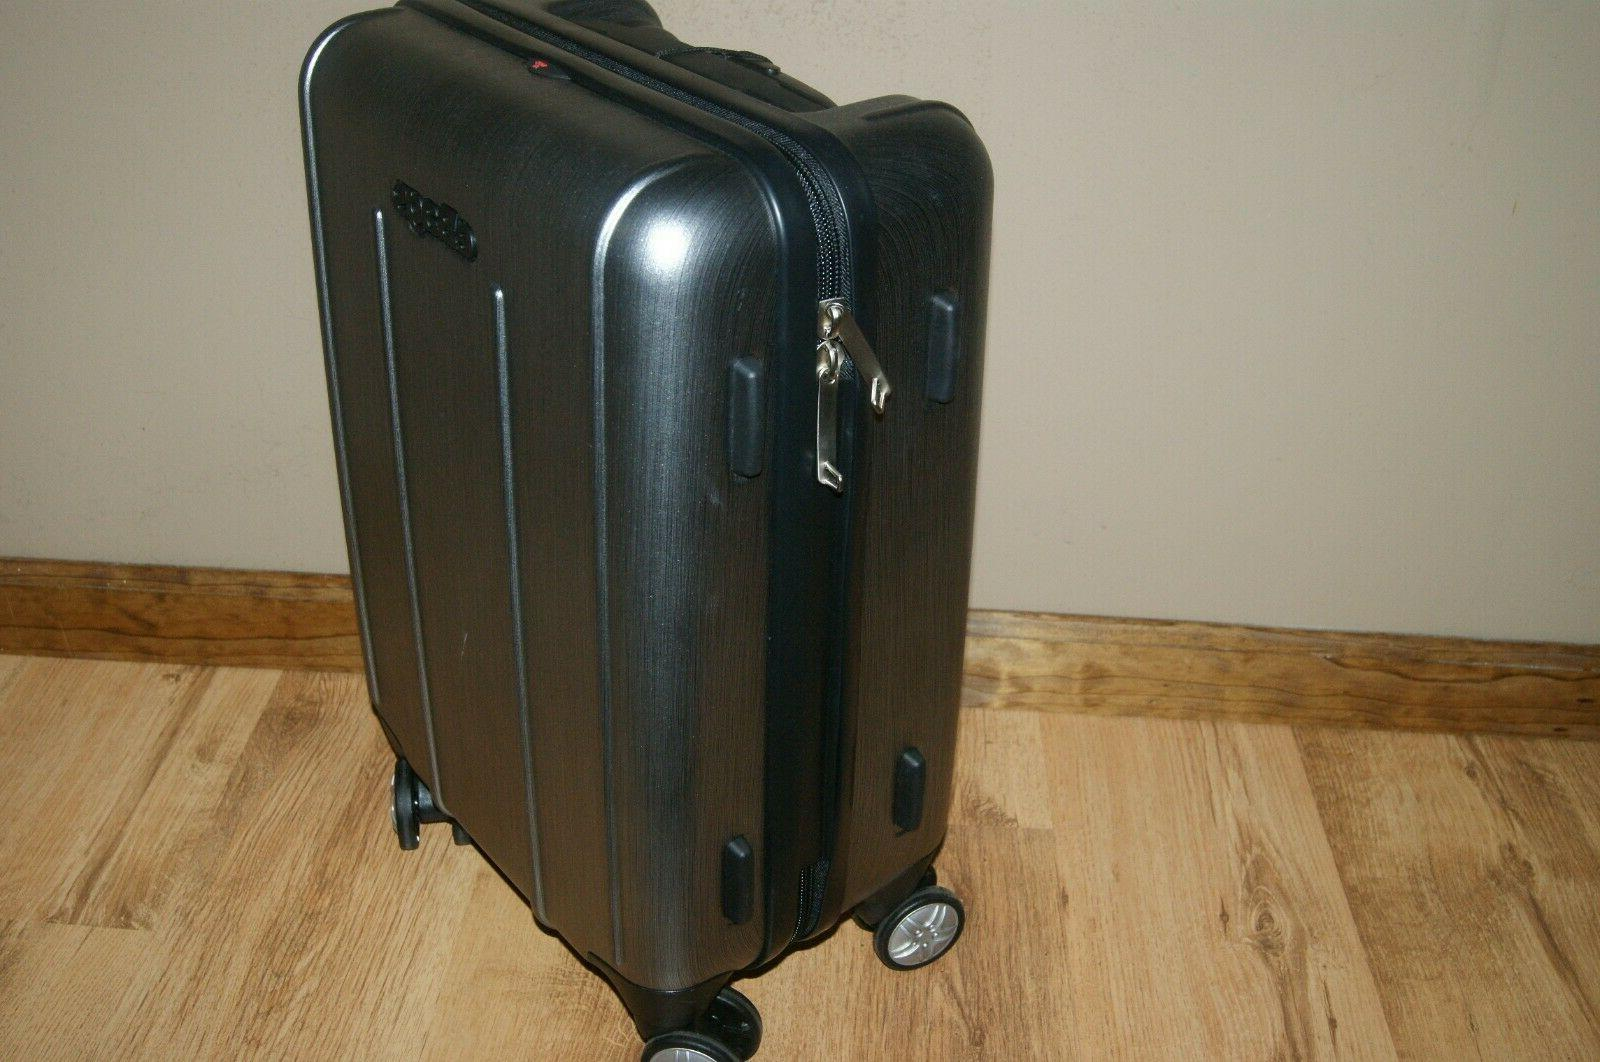 eBags 2.0 Hardside Spinner Carry-On Luggage Brushed Graphite